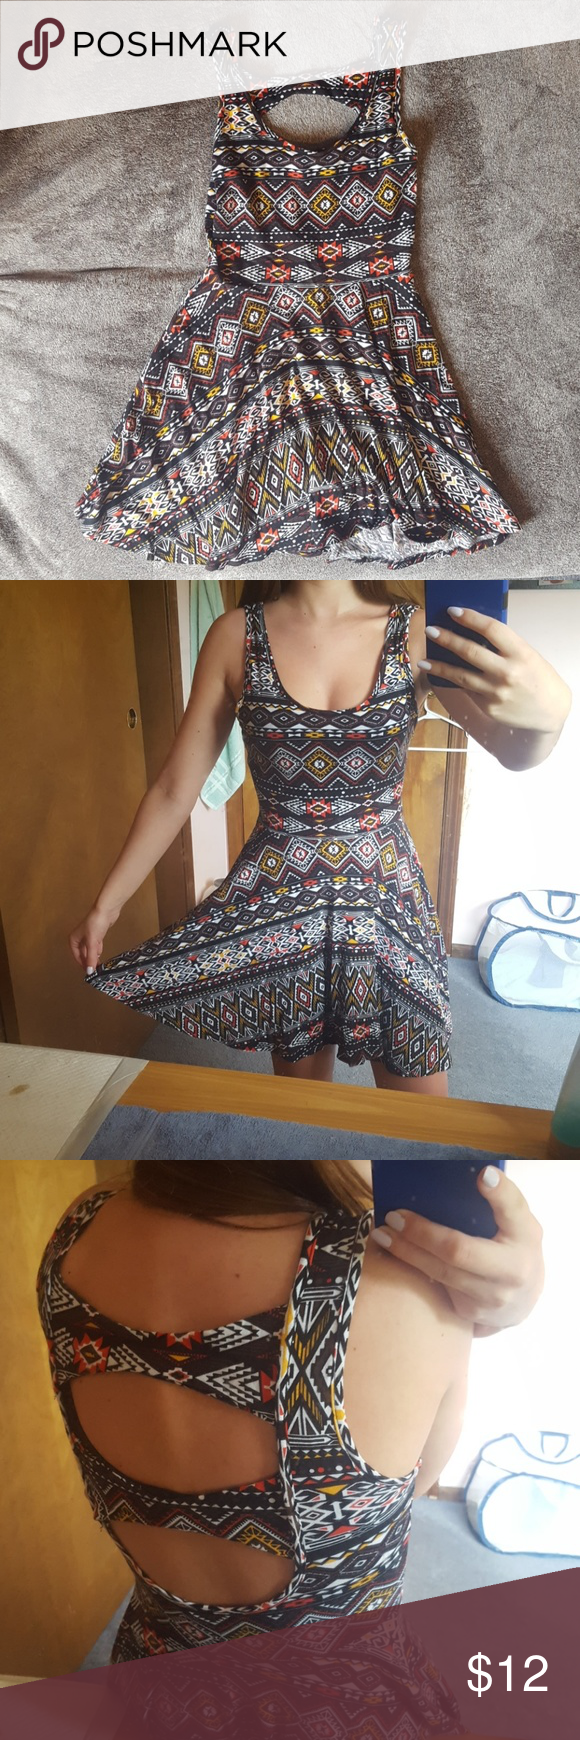 Patterned Short Dress Size medium, but fits a small. Worn a few time but in great condition. Dresses